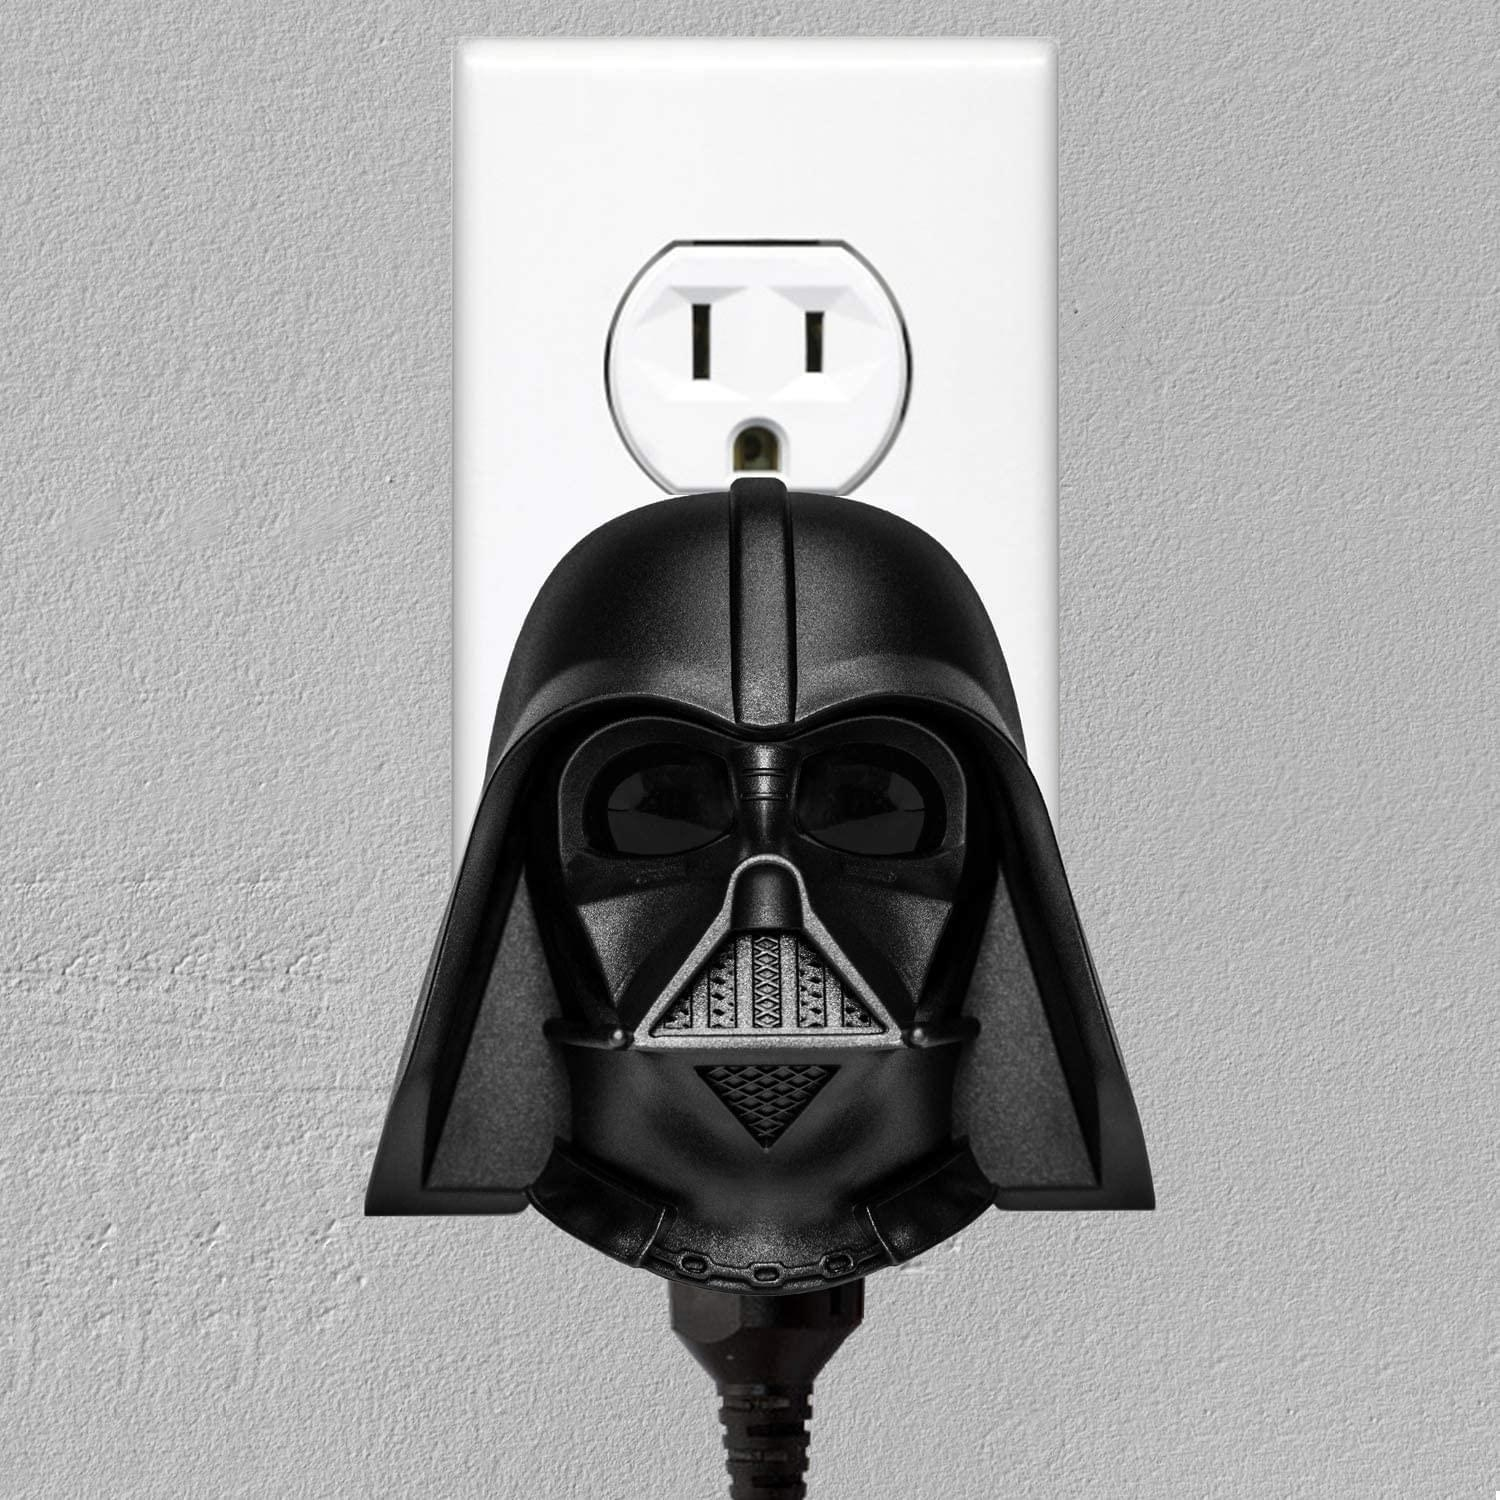 the clapper, which looks like darth vader's helmet, plugged into a wall outlet